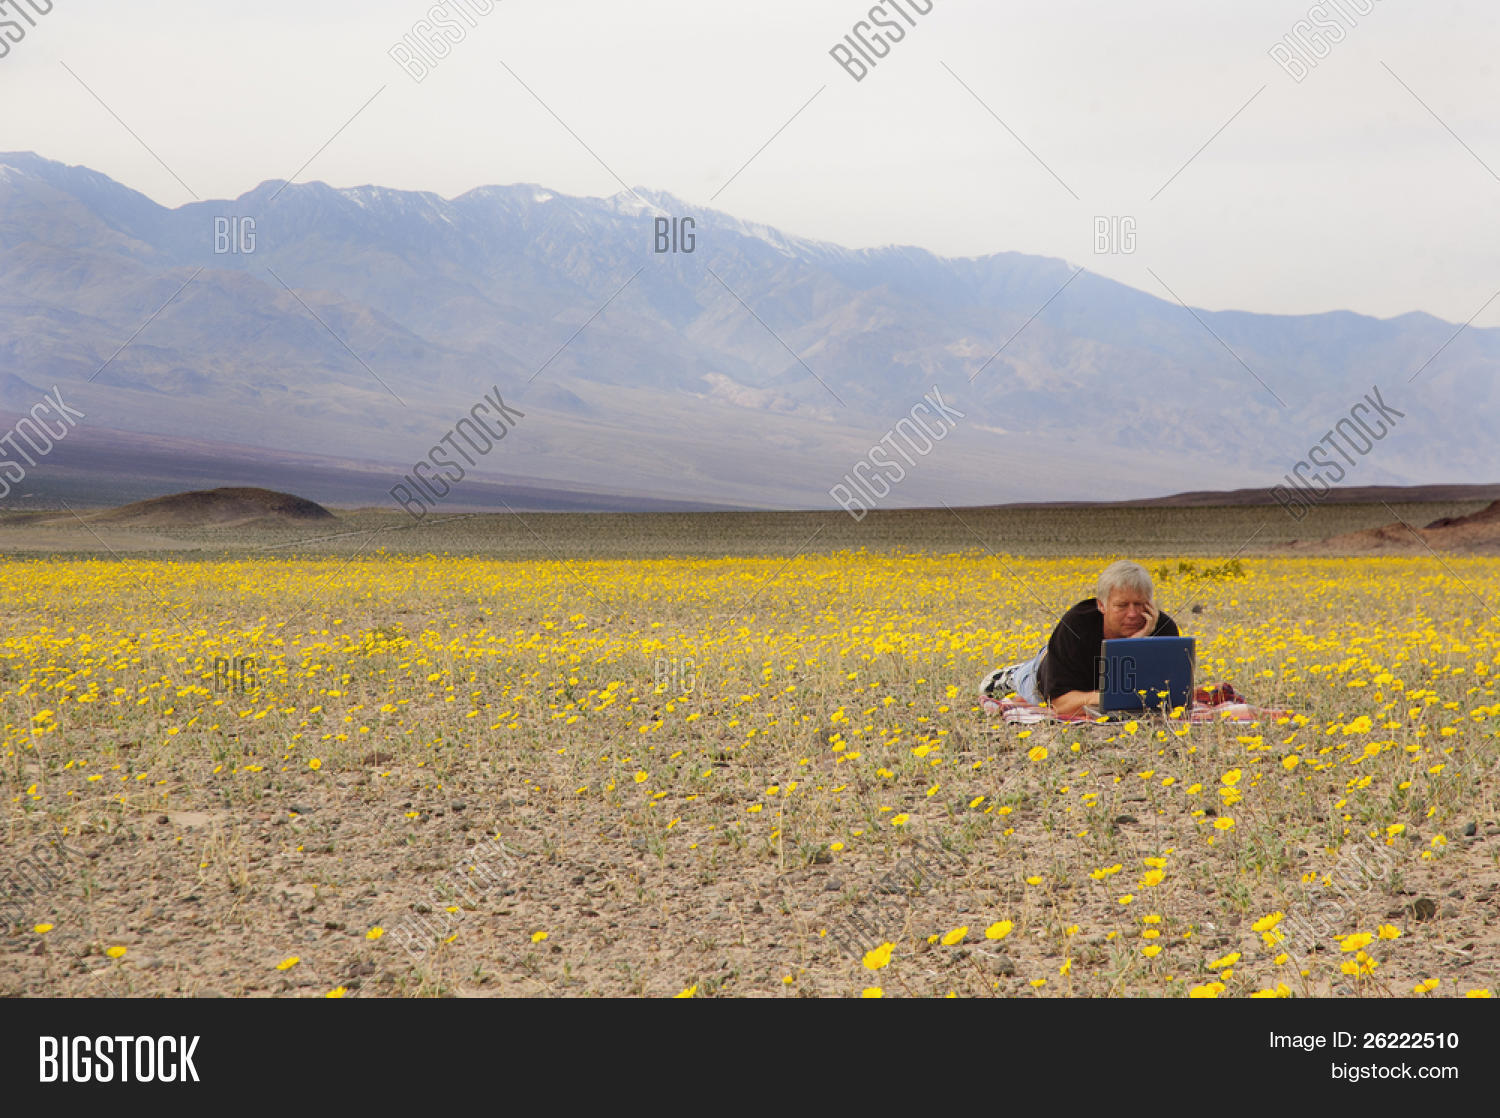 Botanist death valley relaxing amid image photo bigstock botanist in death valley relaxing amid the desert spring flowers catching up on some work mightylinksfo